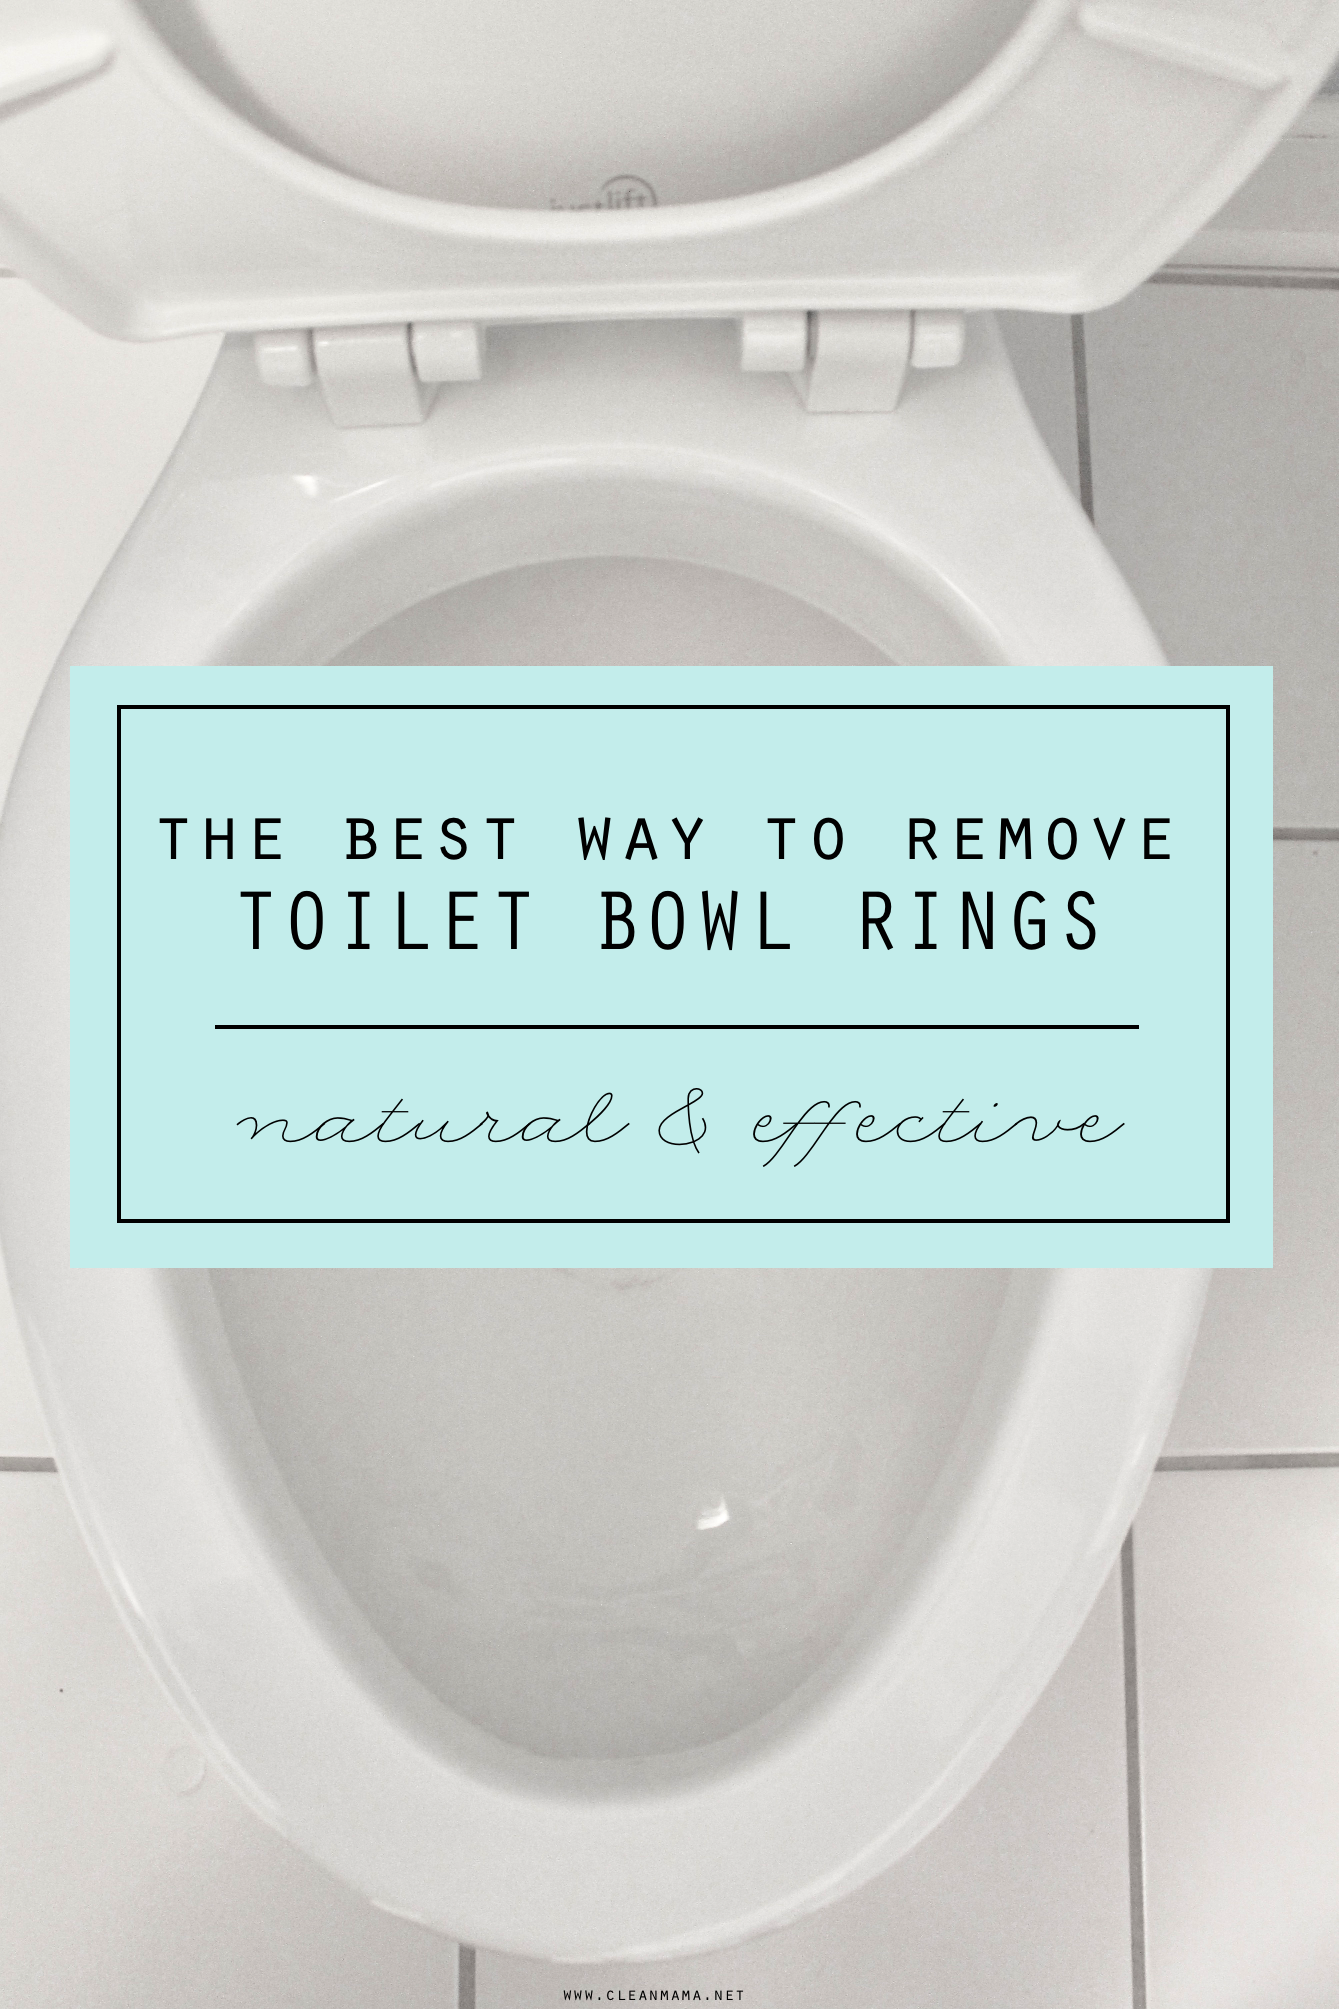 The Best Way to Remove Toilet Bowl Rings | Tips | Cleaning ...